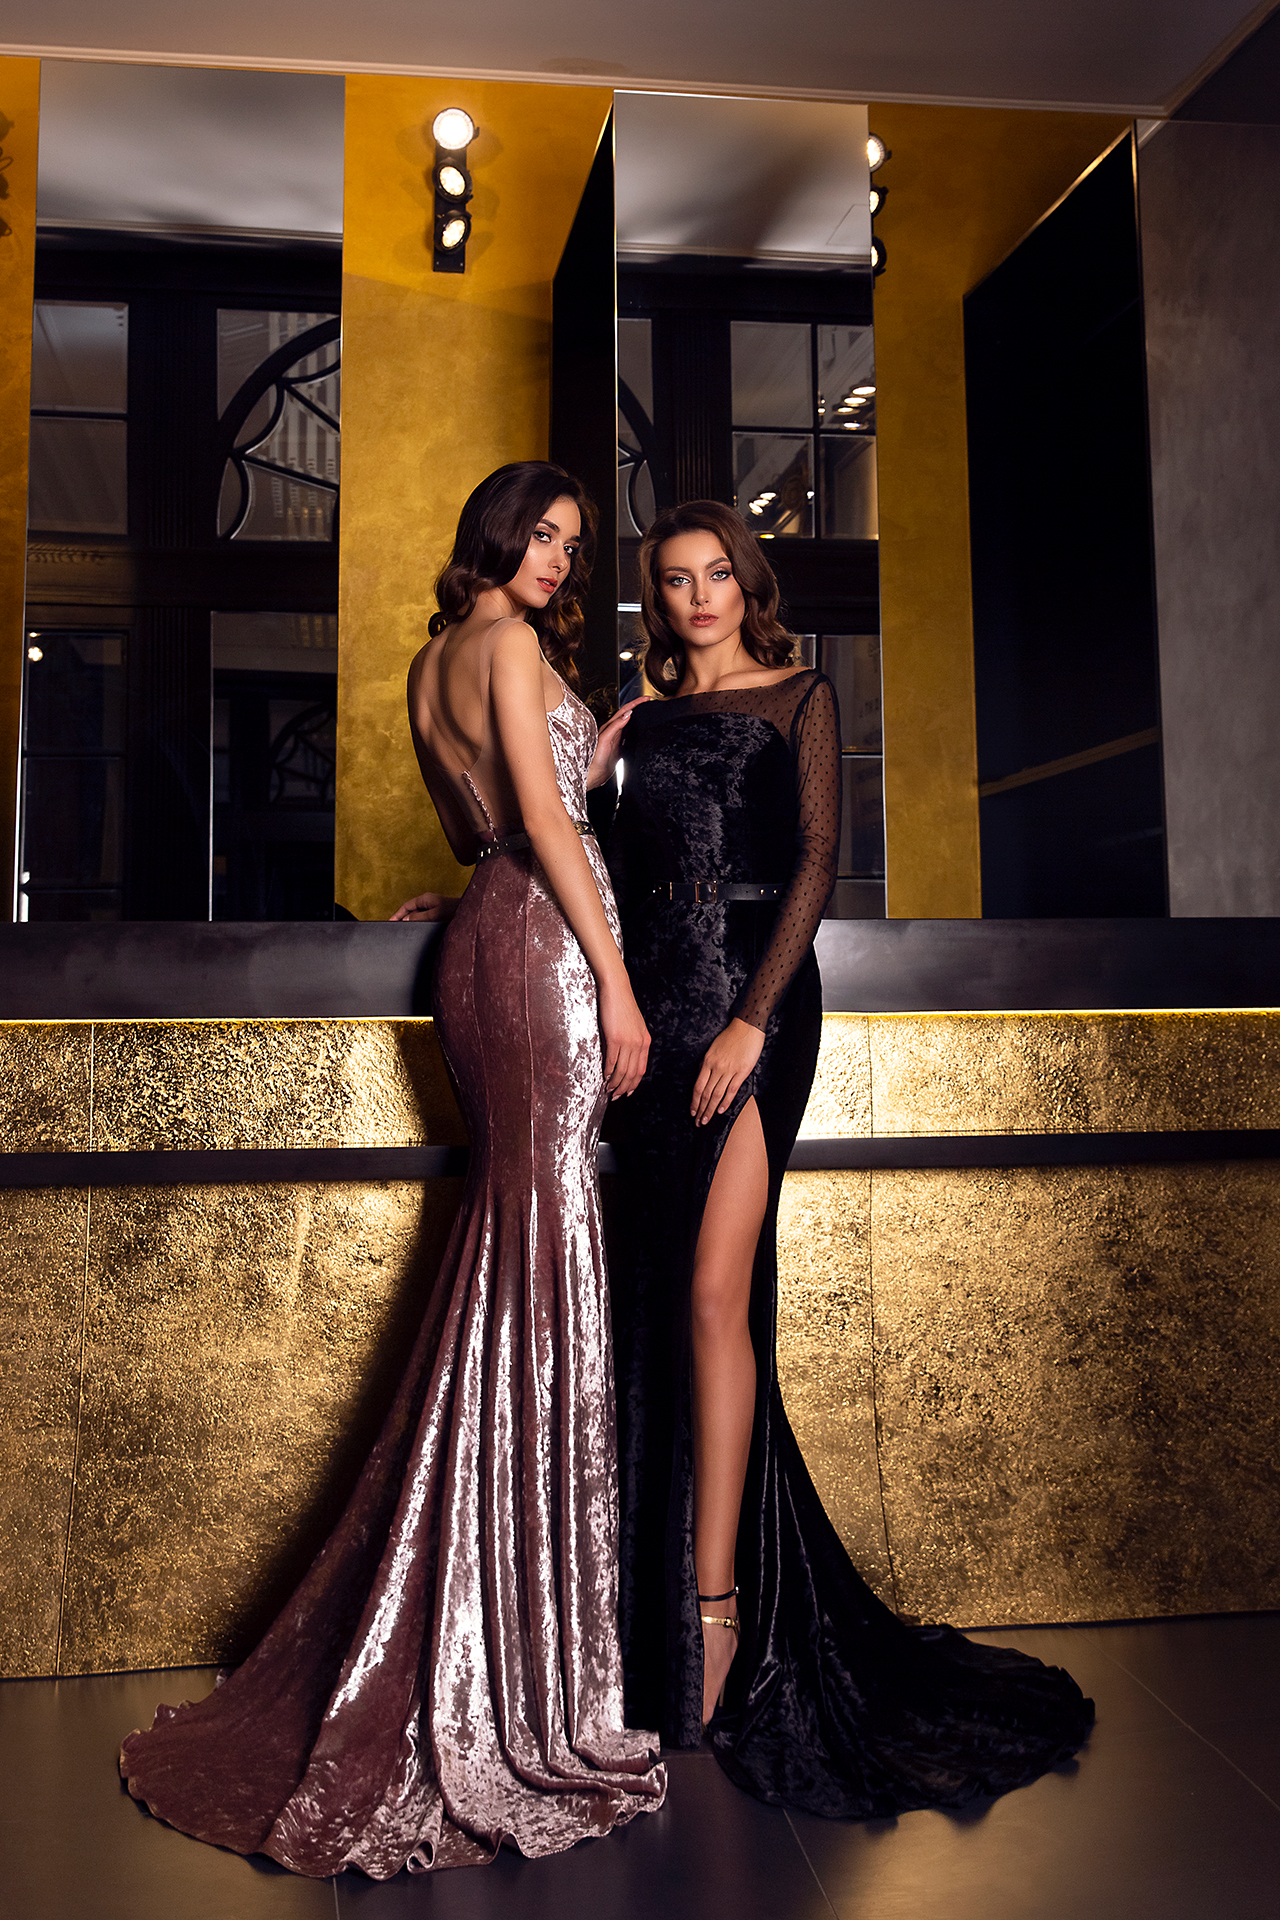 Evening dresses №1546  Silhouette  Fitted  Color  Black  Neckline  Straight  Sleeves  Long Sleeves  Train  With train - foto 2